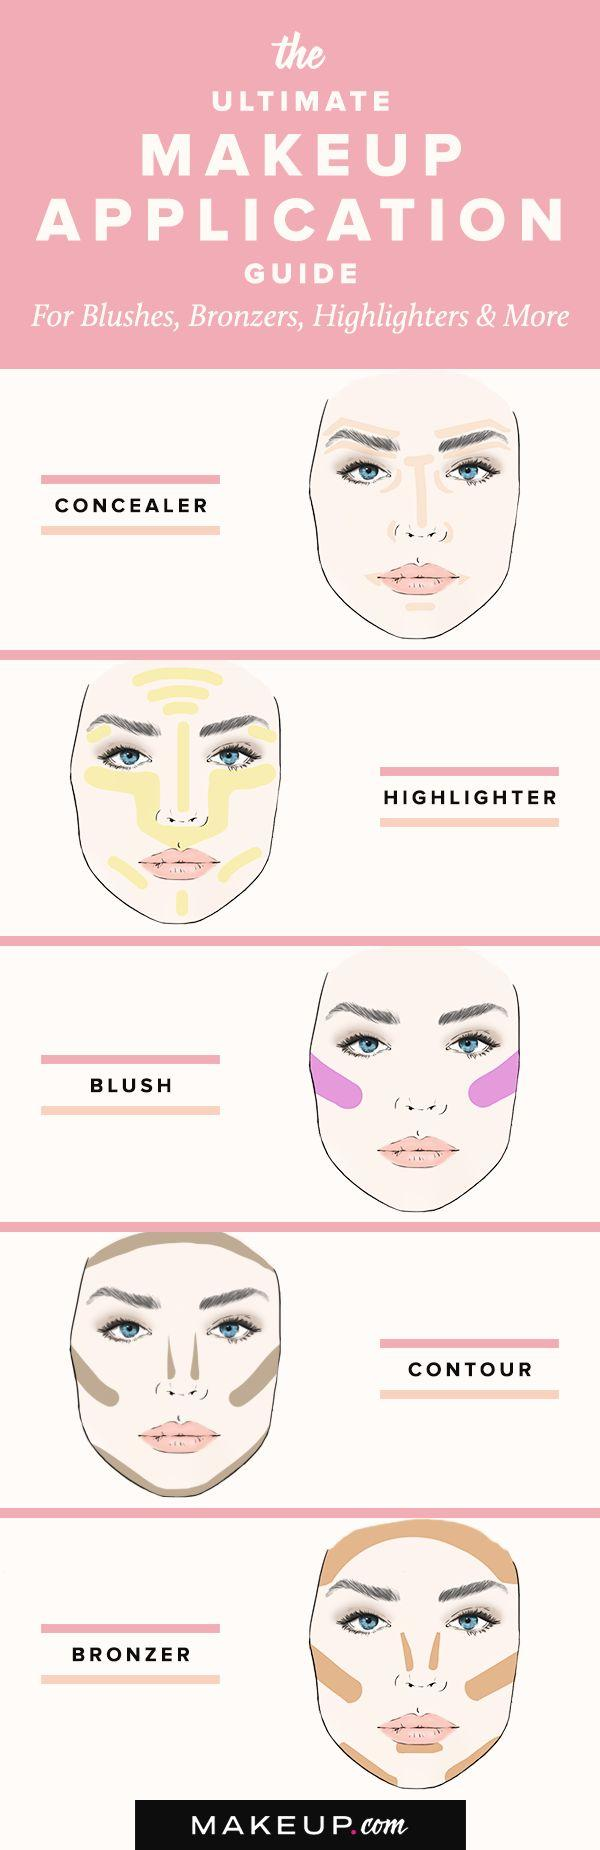 The Ultimate Makeup Application Guide For Blushes, Bronzers ...